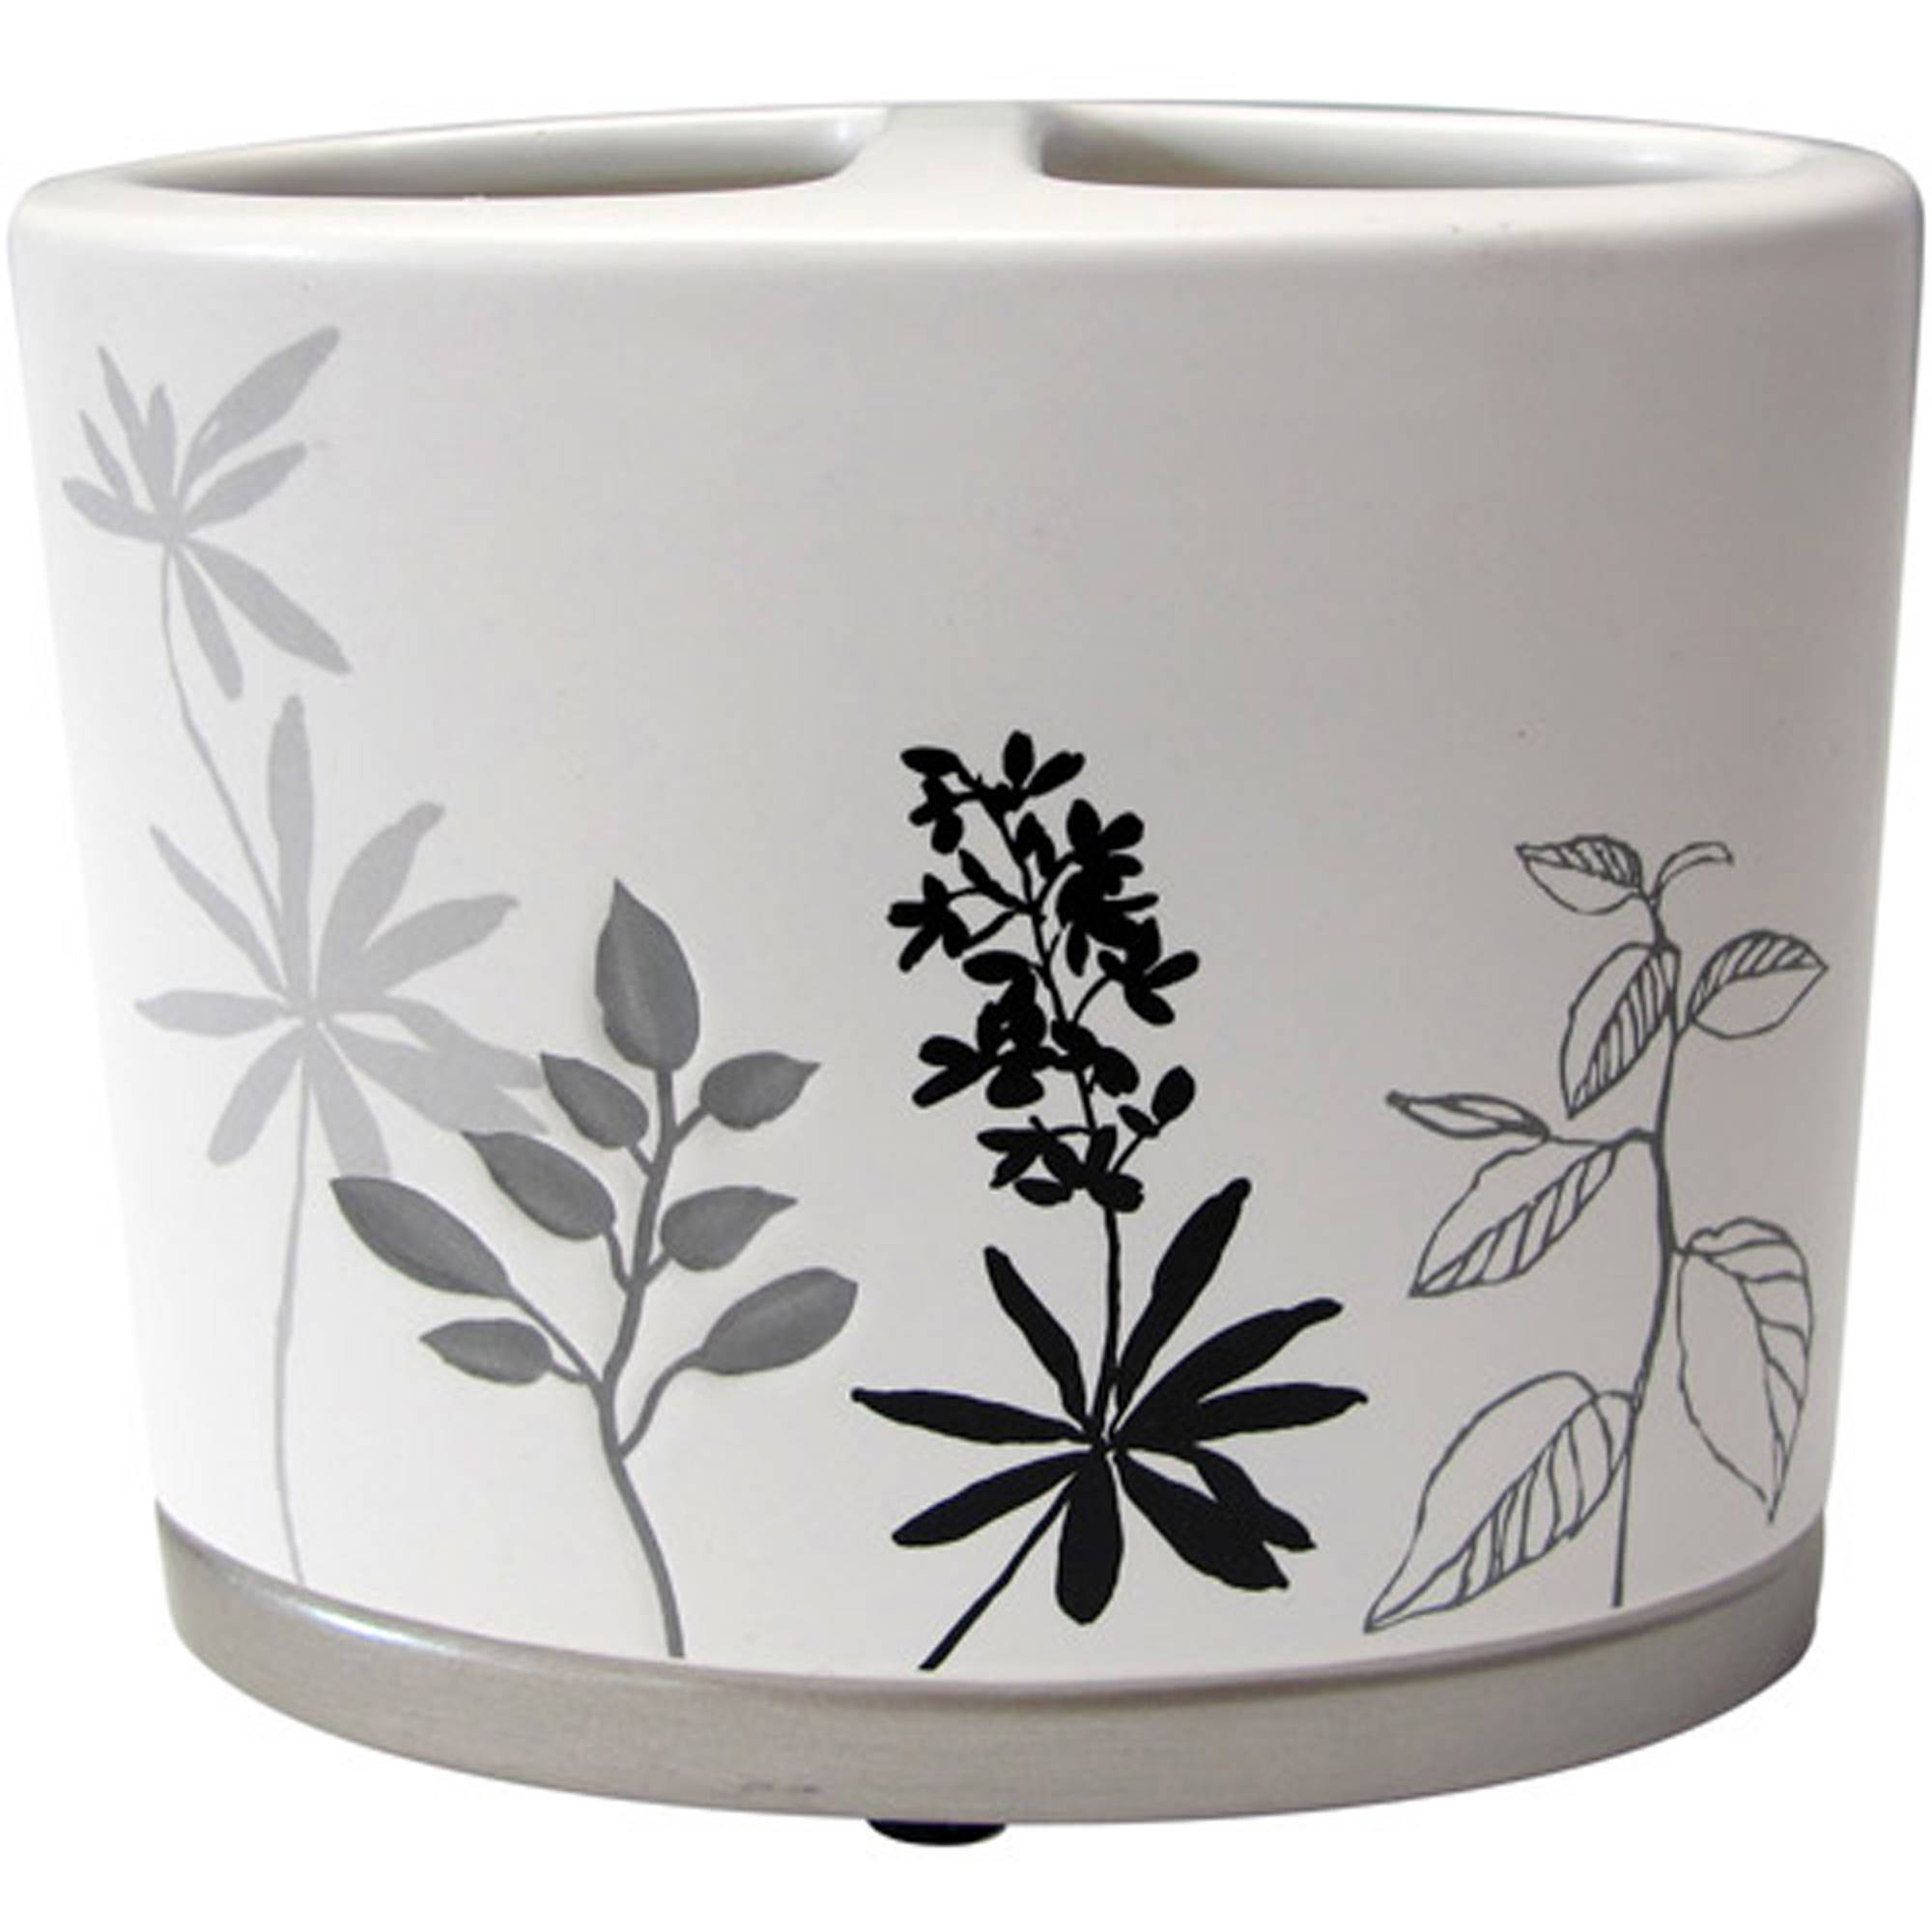 Better Homes and Gardens Tranquil Leaves Decorative Bath Collection - Toothbrush Holder